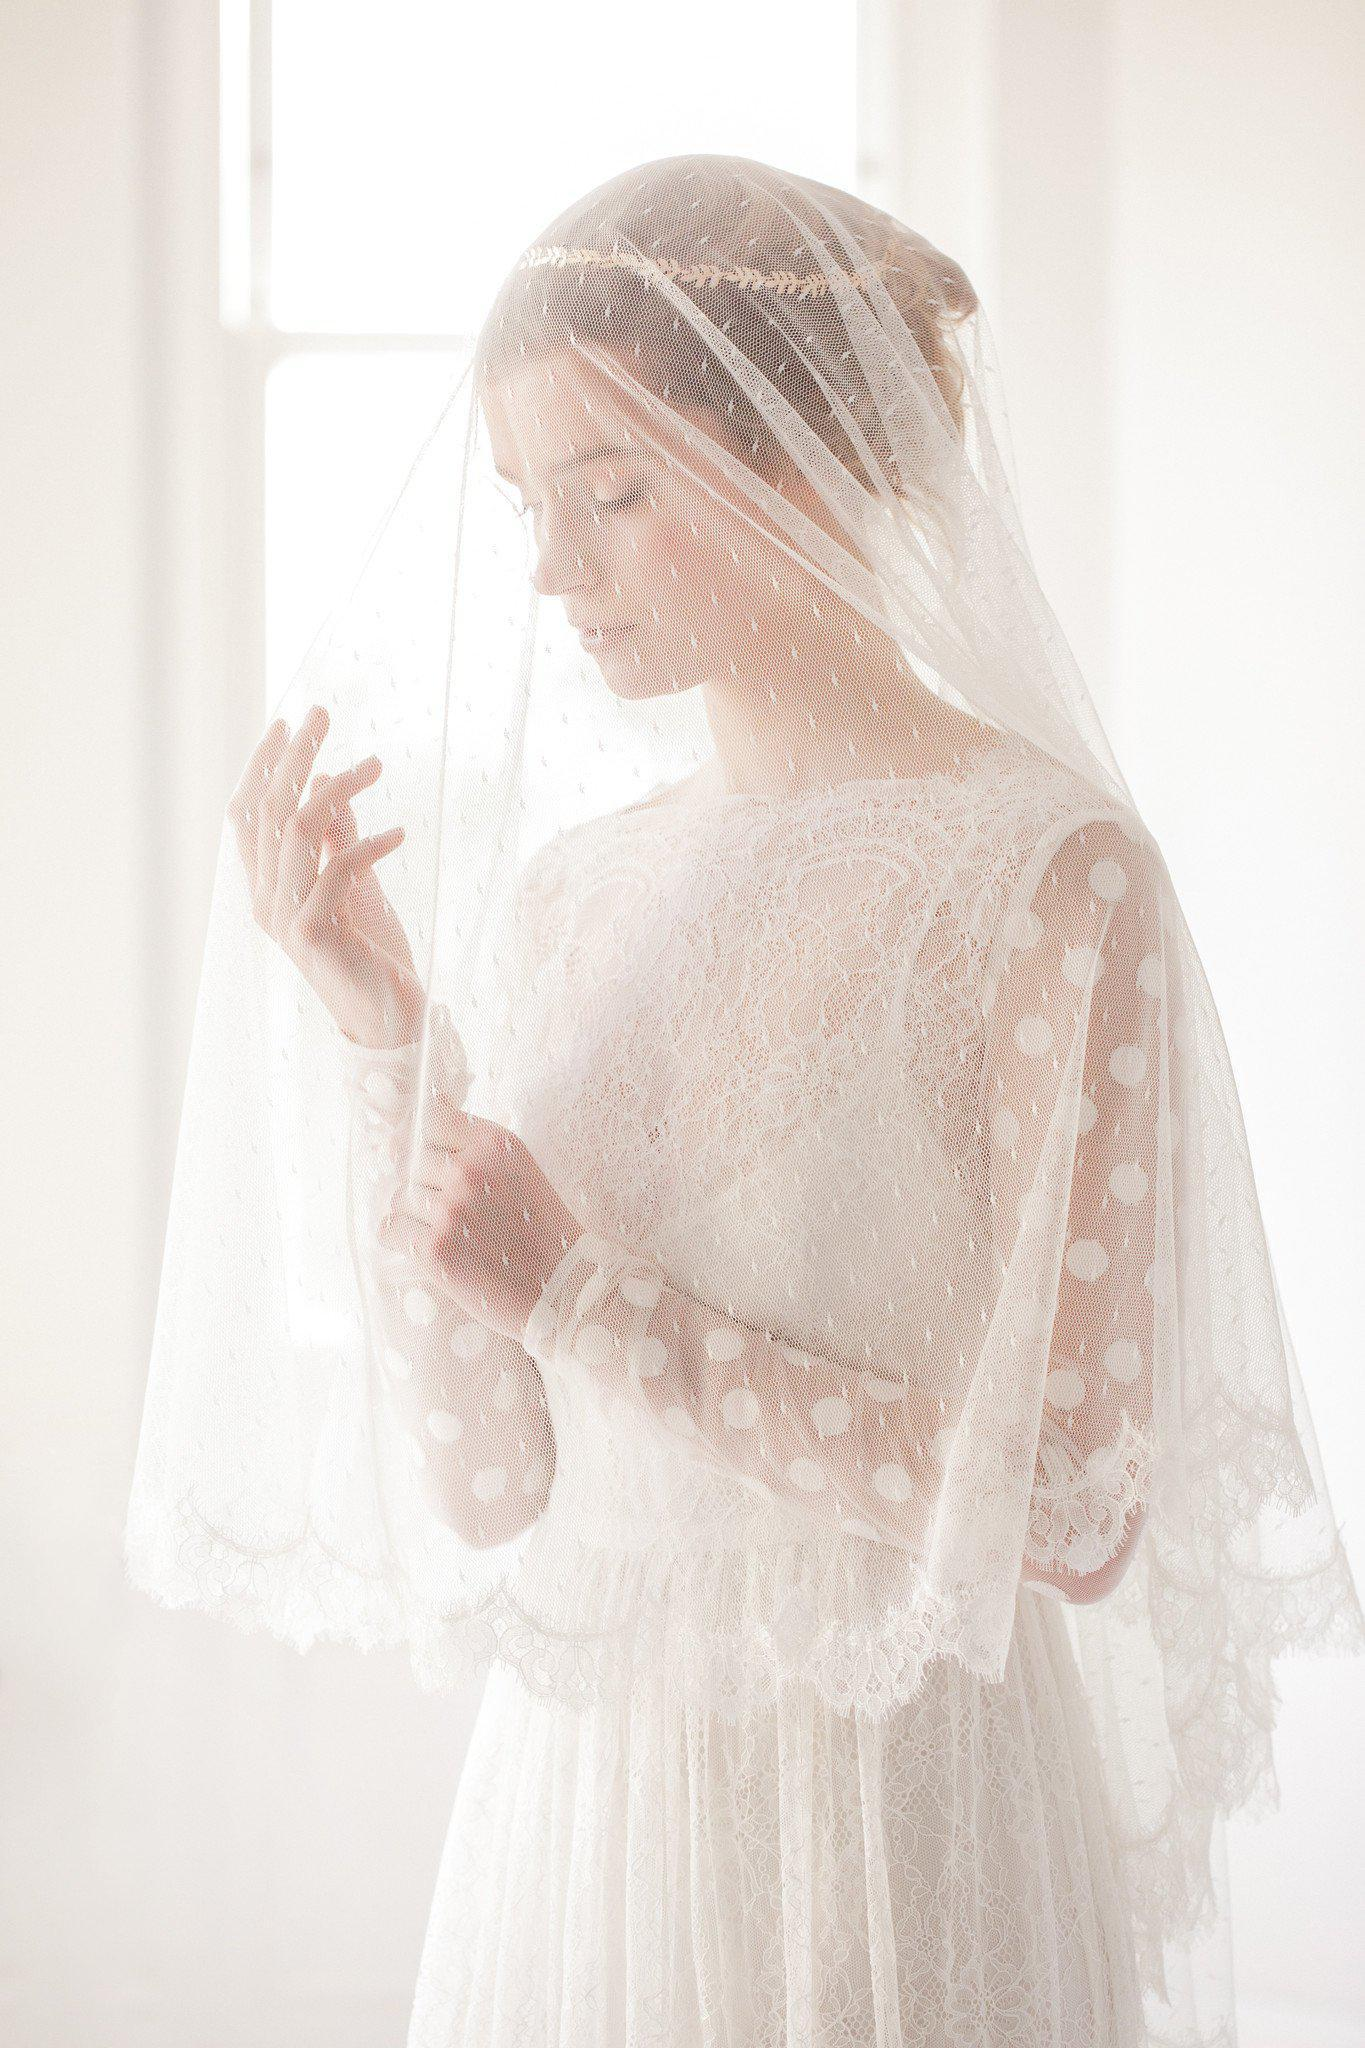 Drop wedding veil with polka dot tulle and french eyelash lace trim- 'Amie'